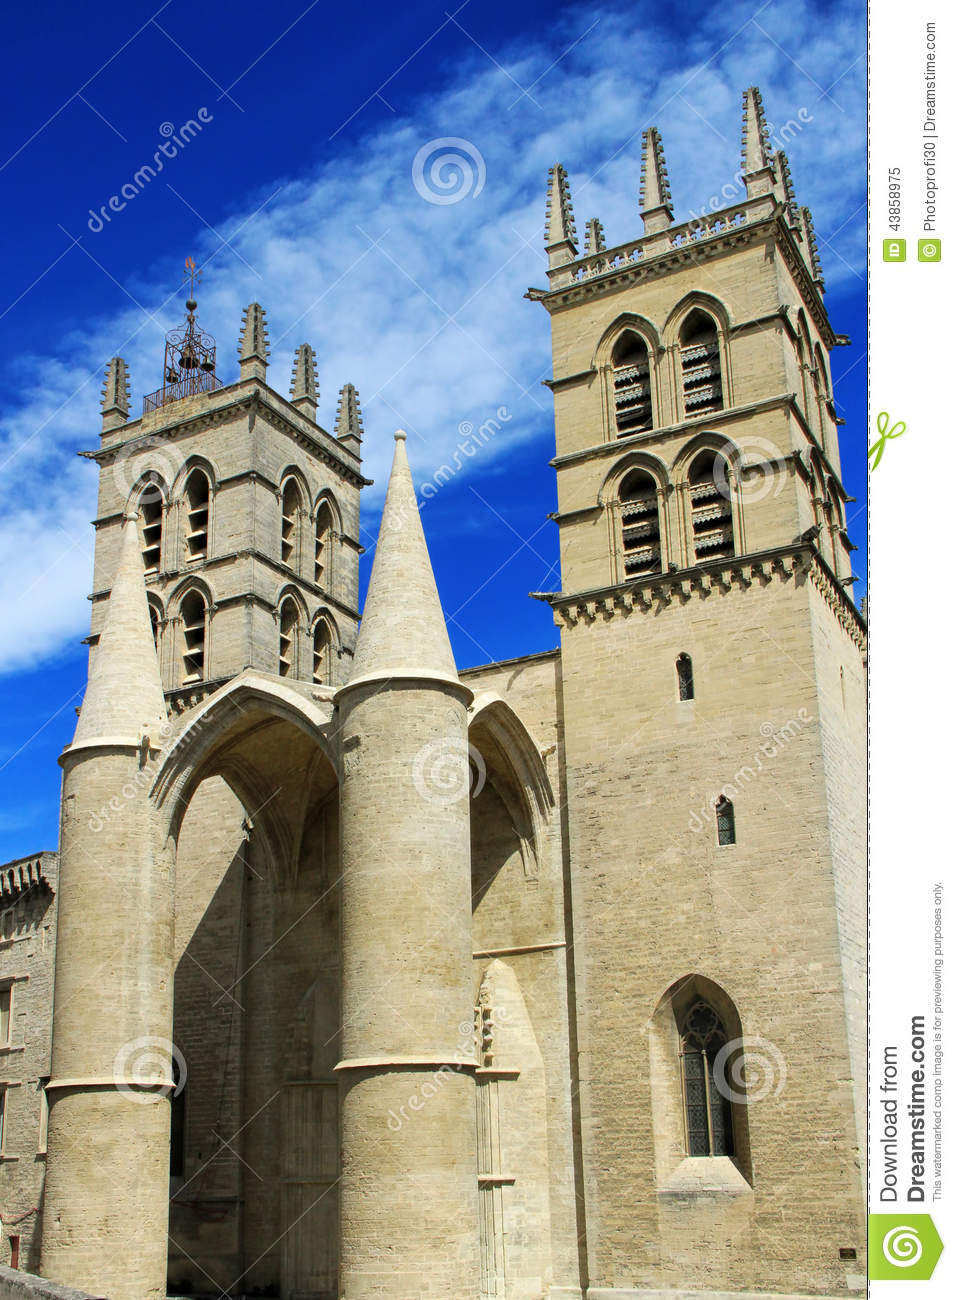 saint pierre cathedral montpellier france stock image 43858975. Black Bedroom Furniture Sets. Home Design Ideas